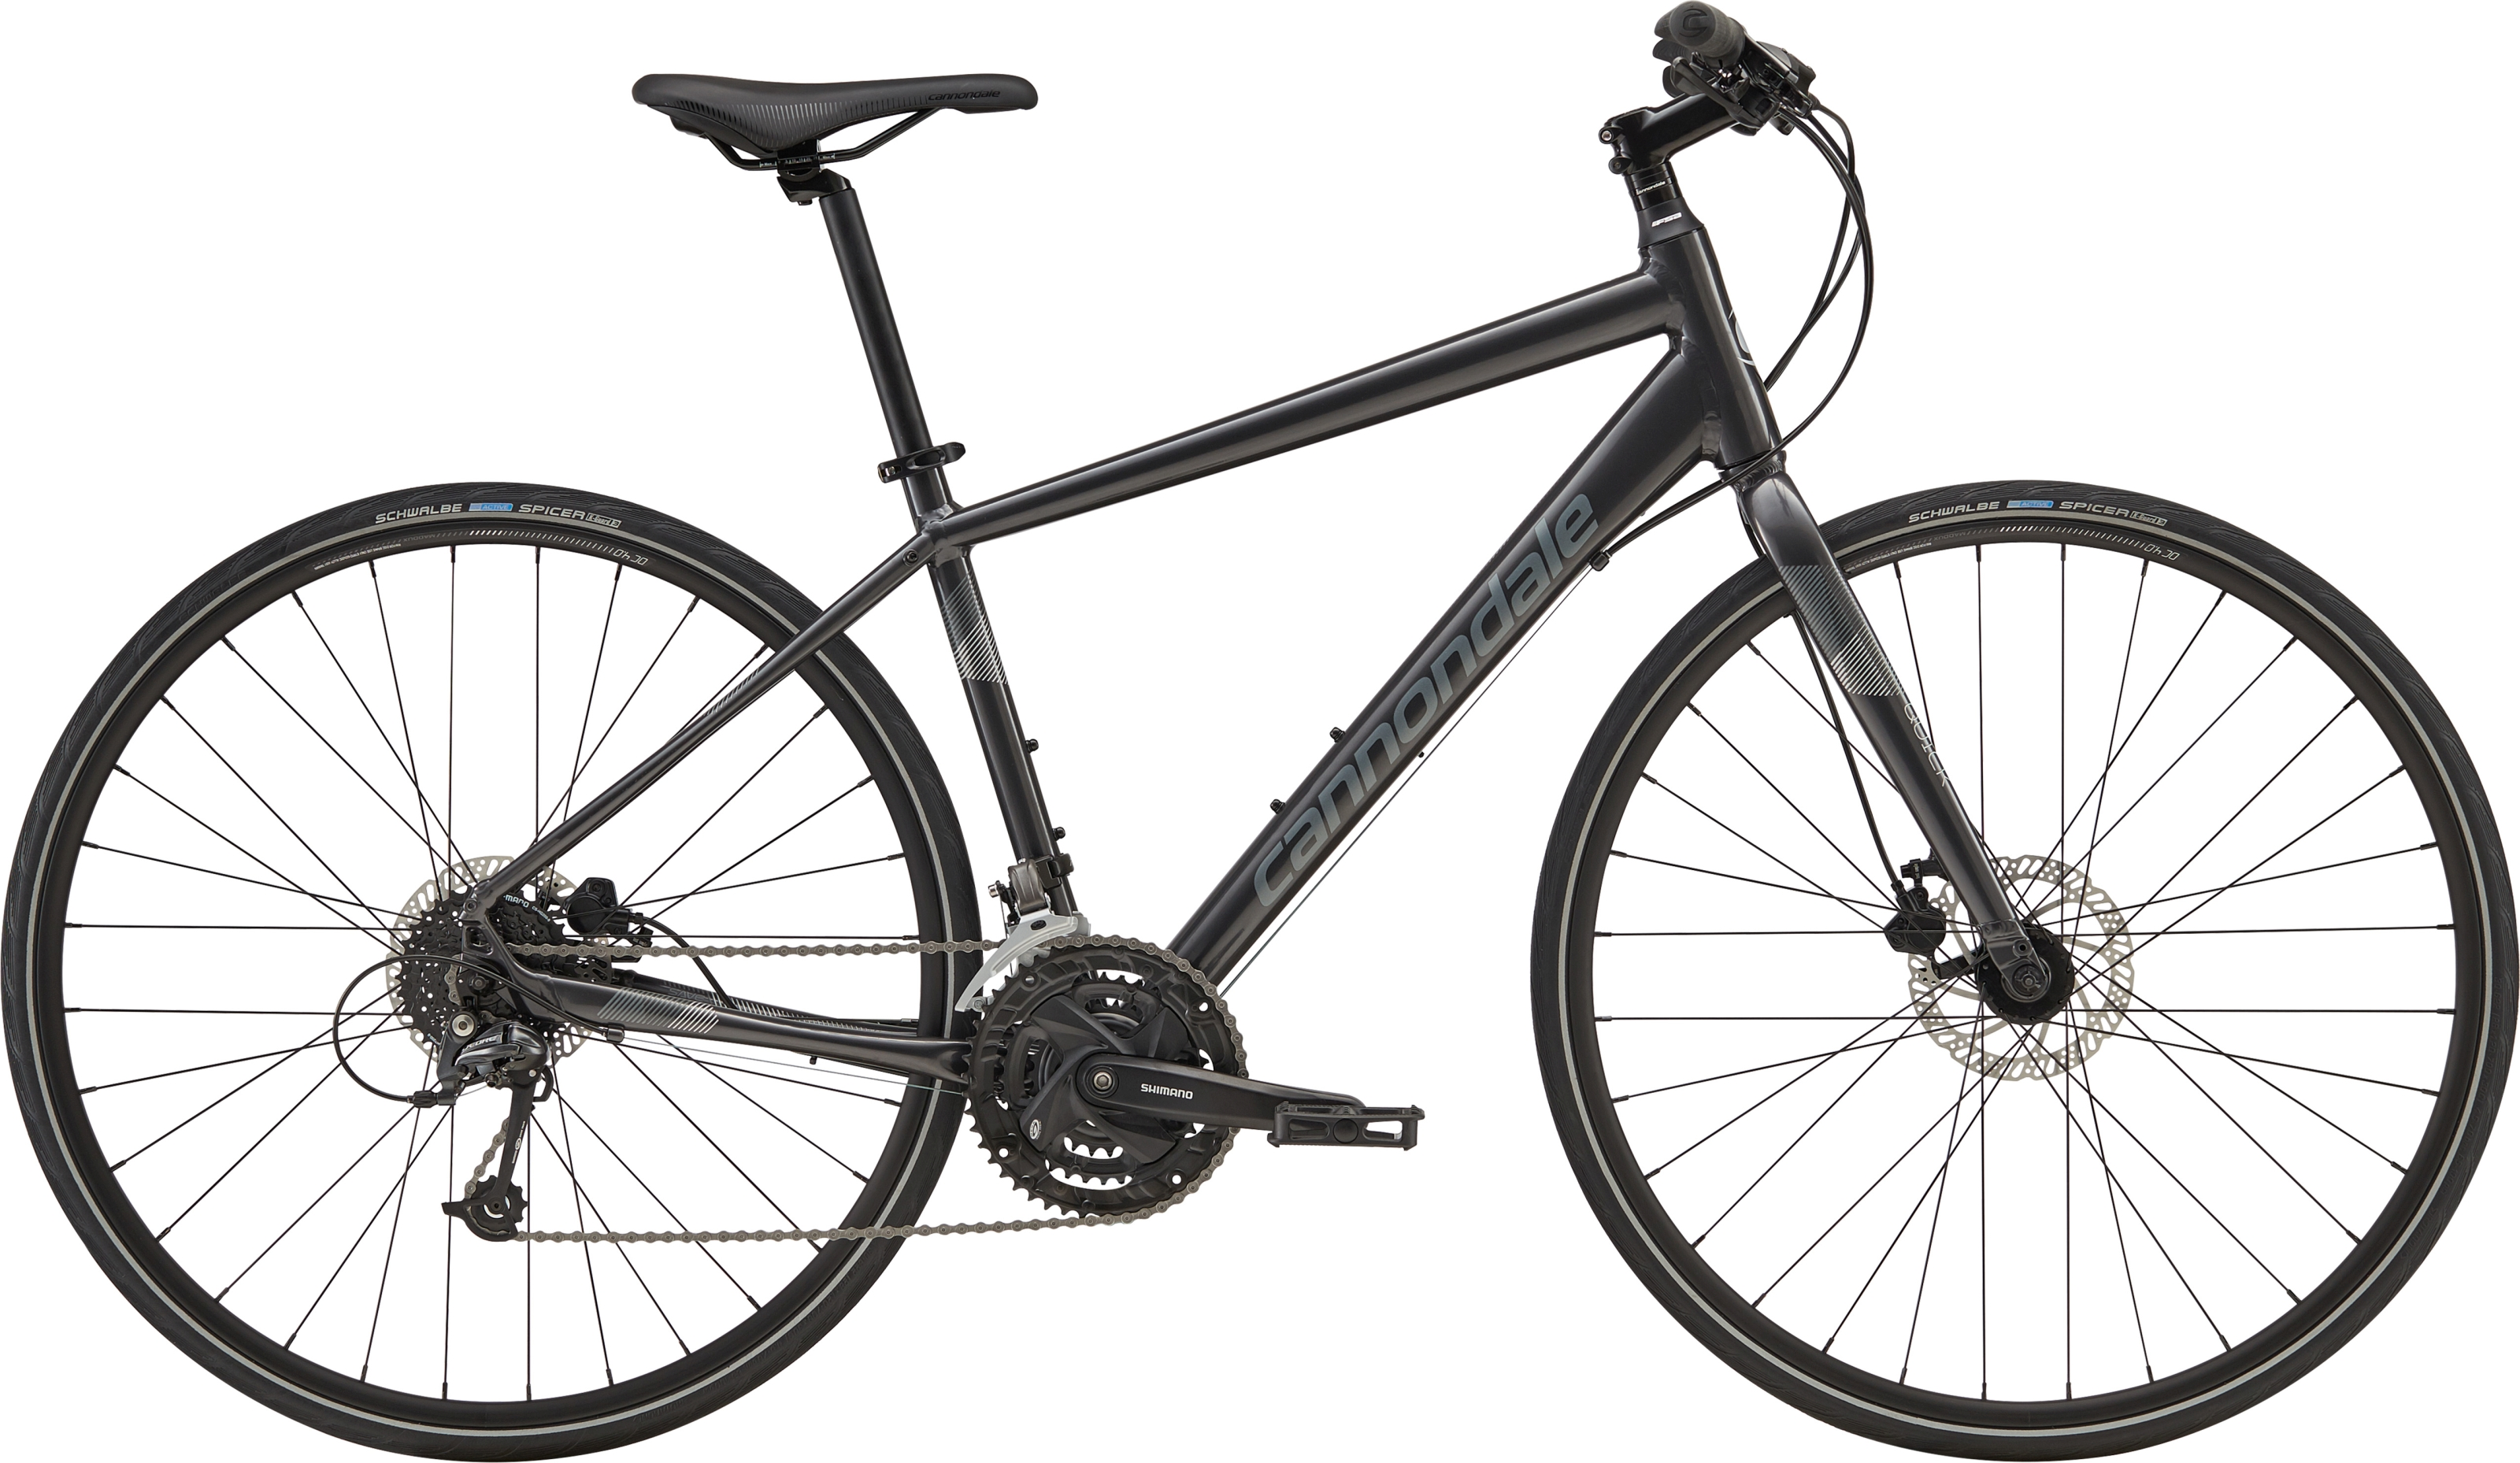 2019 Cannondale Quick 4 Mens Flat Bar Hybrid in Grey £499.00